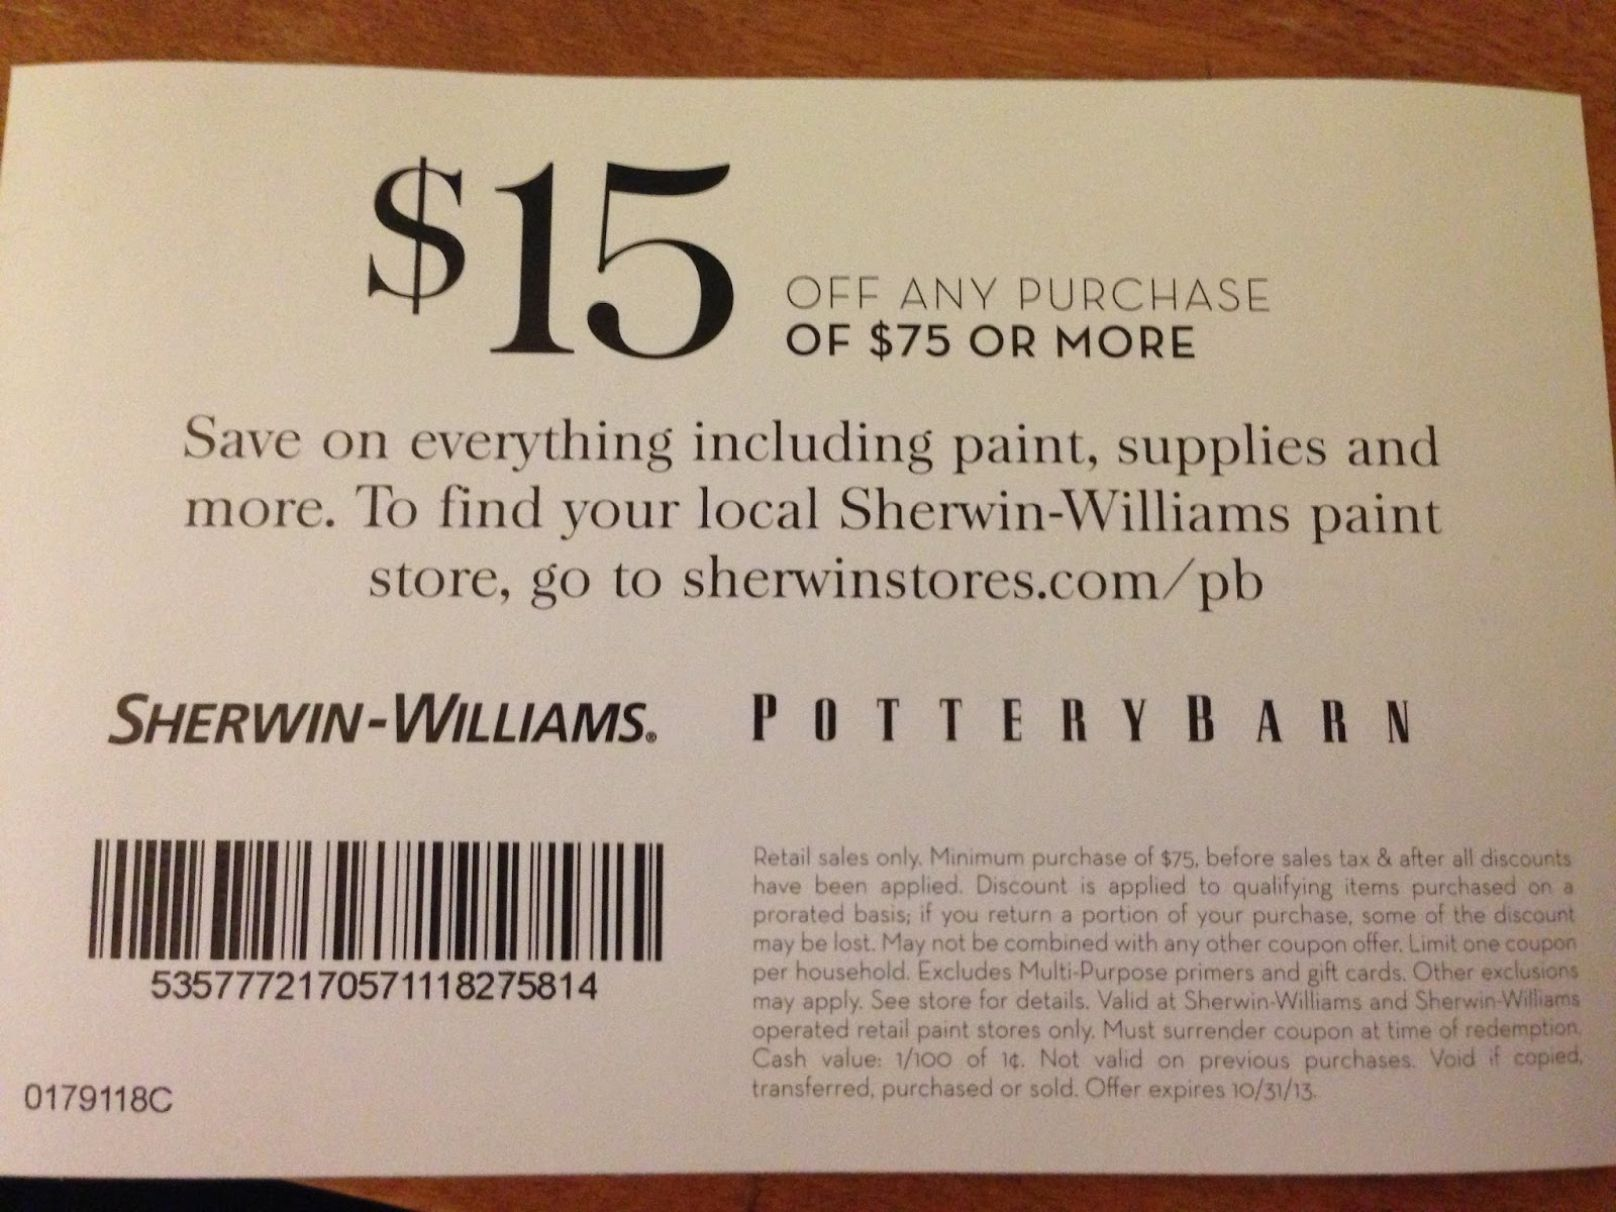 photo relating to Pottery Barn Coupon Printable titled Pottery Barn 15 Off Coupon Collections Plans Sherwin